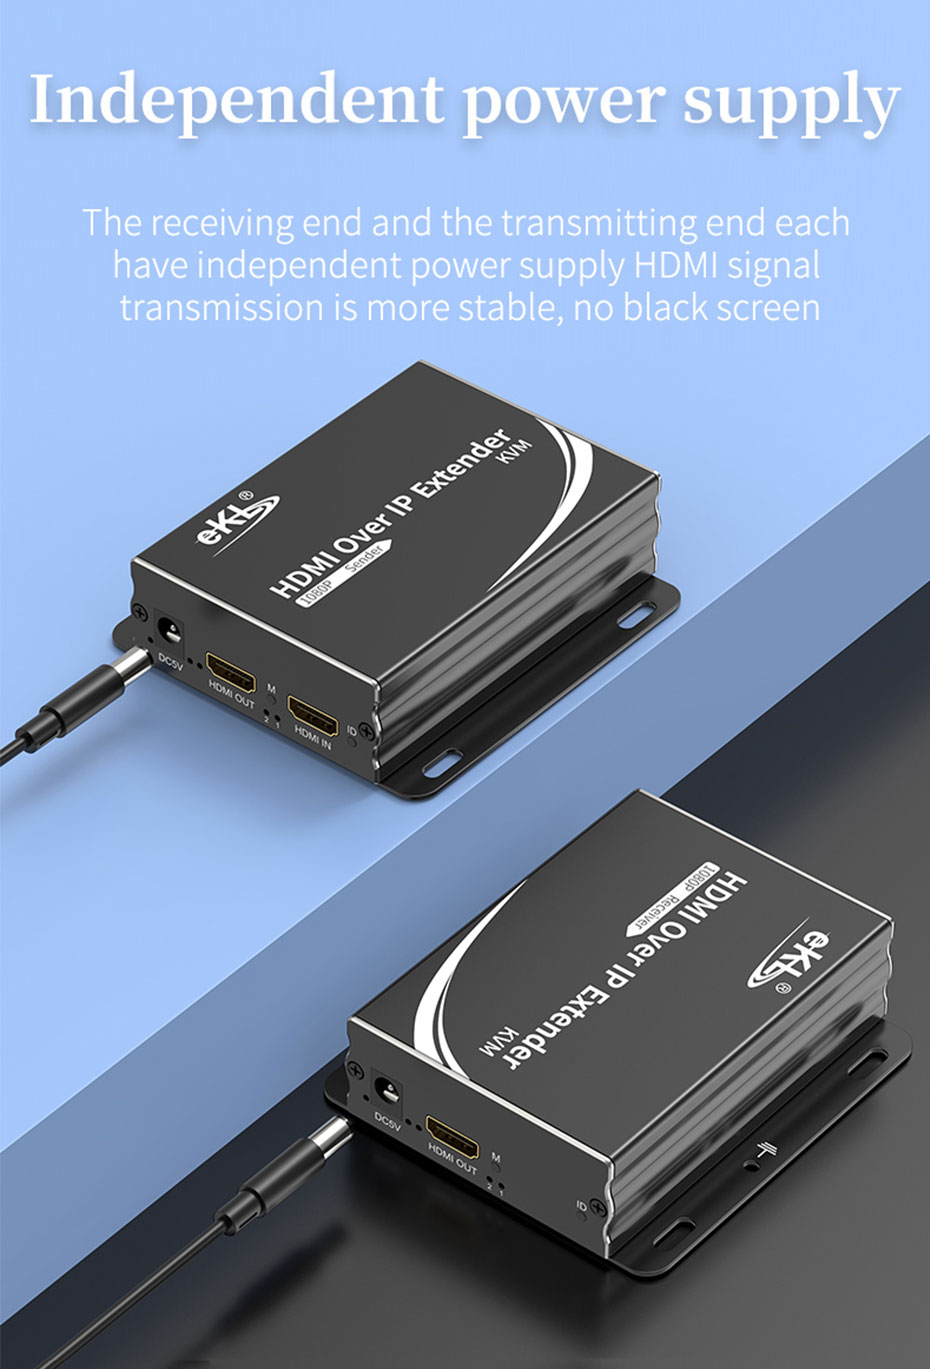 The HDMI KVM optical fiber extender HE001 is powered by an independent power source and works stably